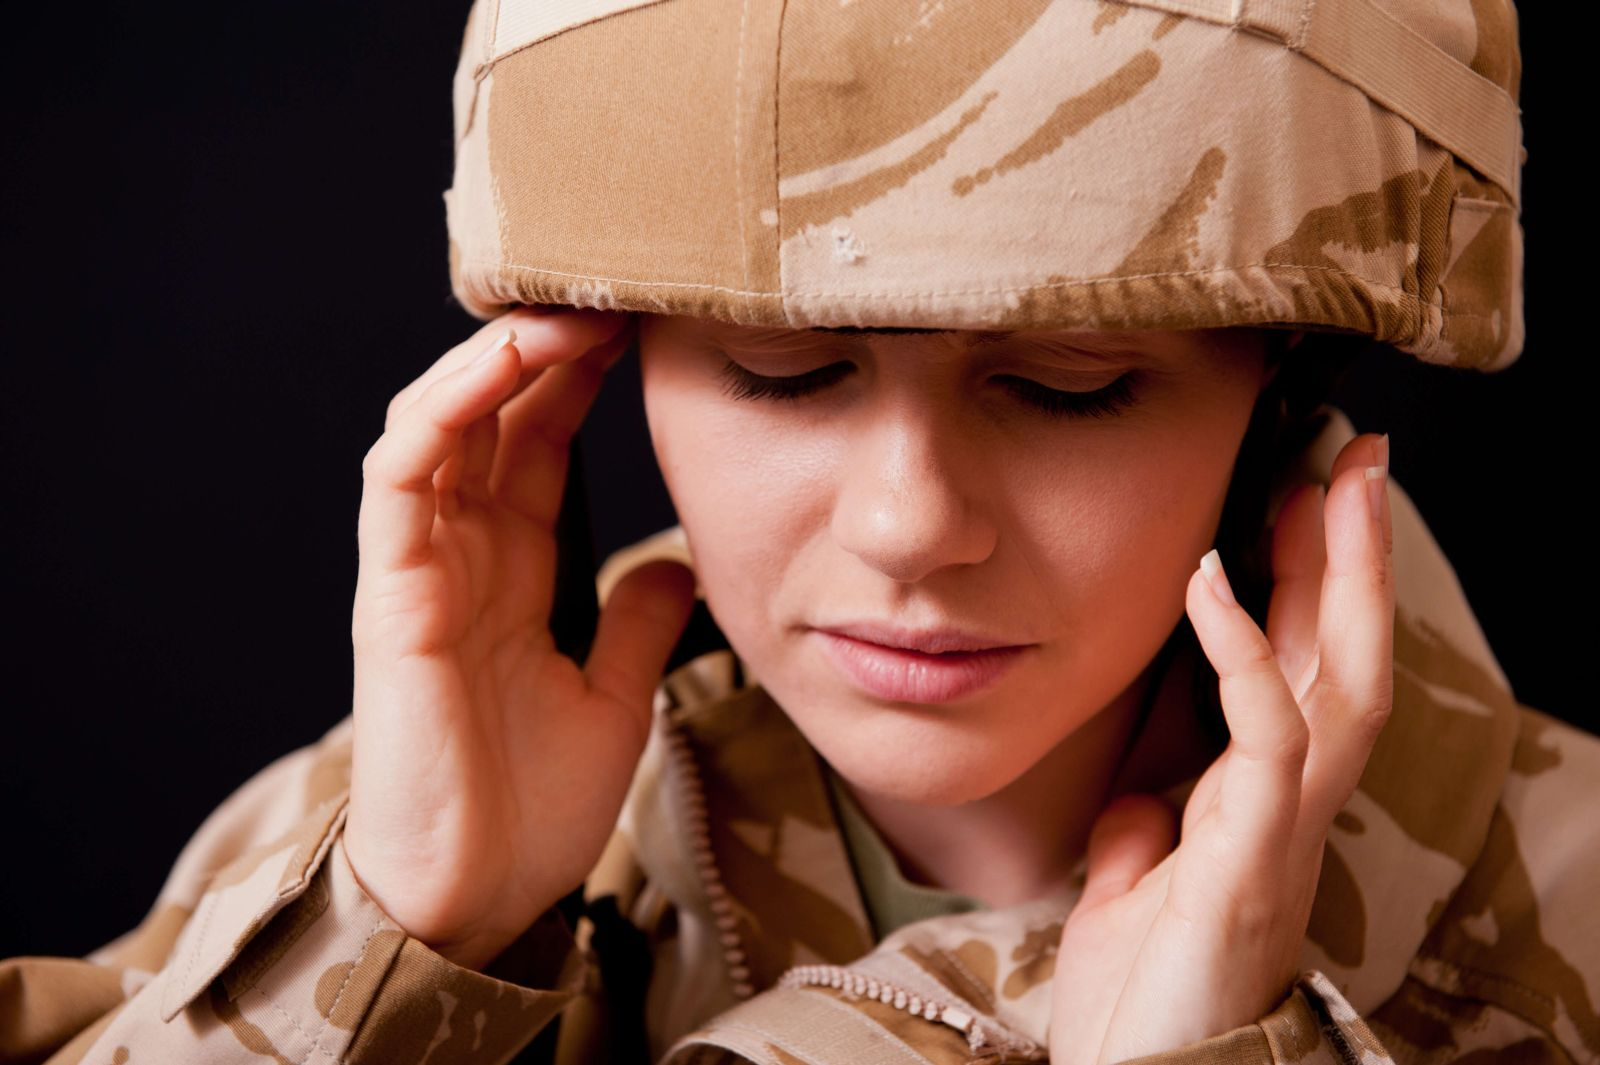 Soldier With Ear Pain. 3M Earplug Injury. Chris Hudson and Associates.